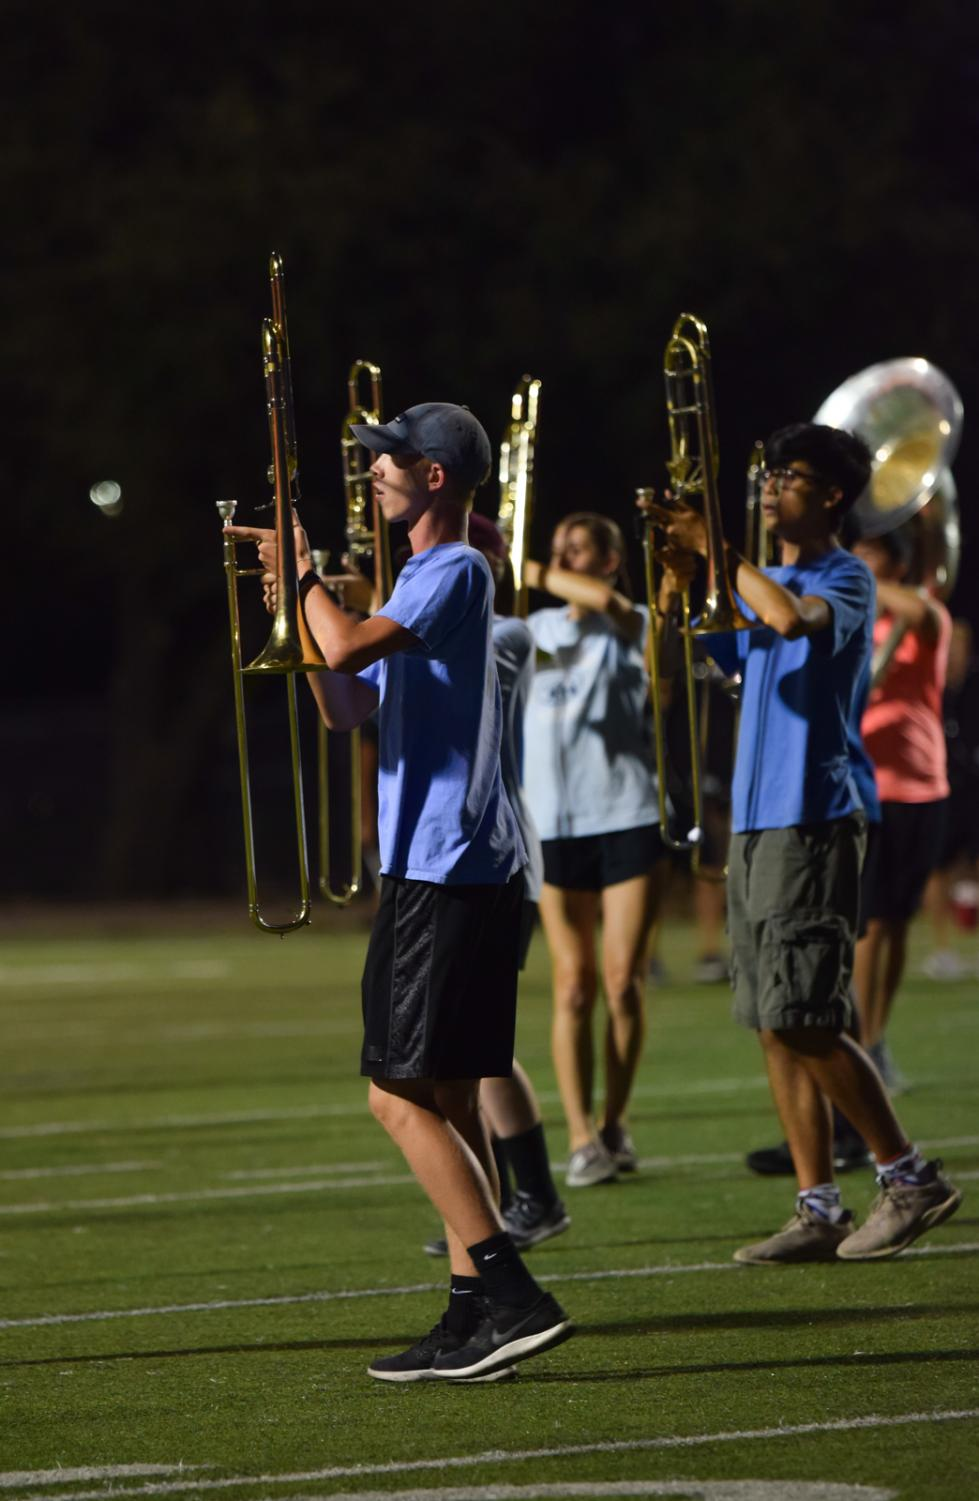 Along+with+other+trombone+players%2C+Hart+Black+%2721+marches+across+the+field+in+formation.